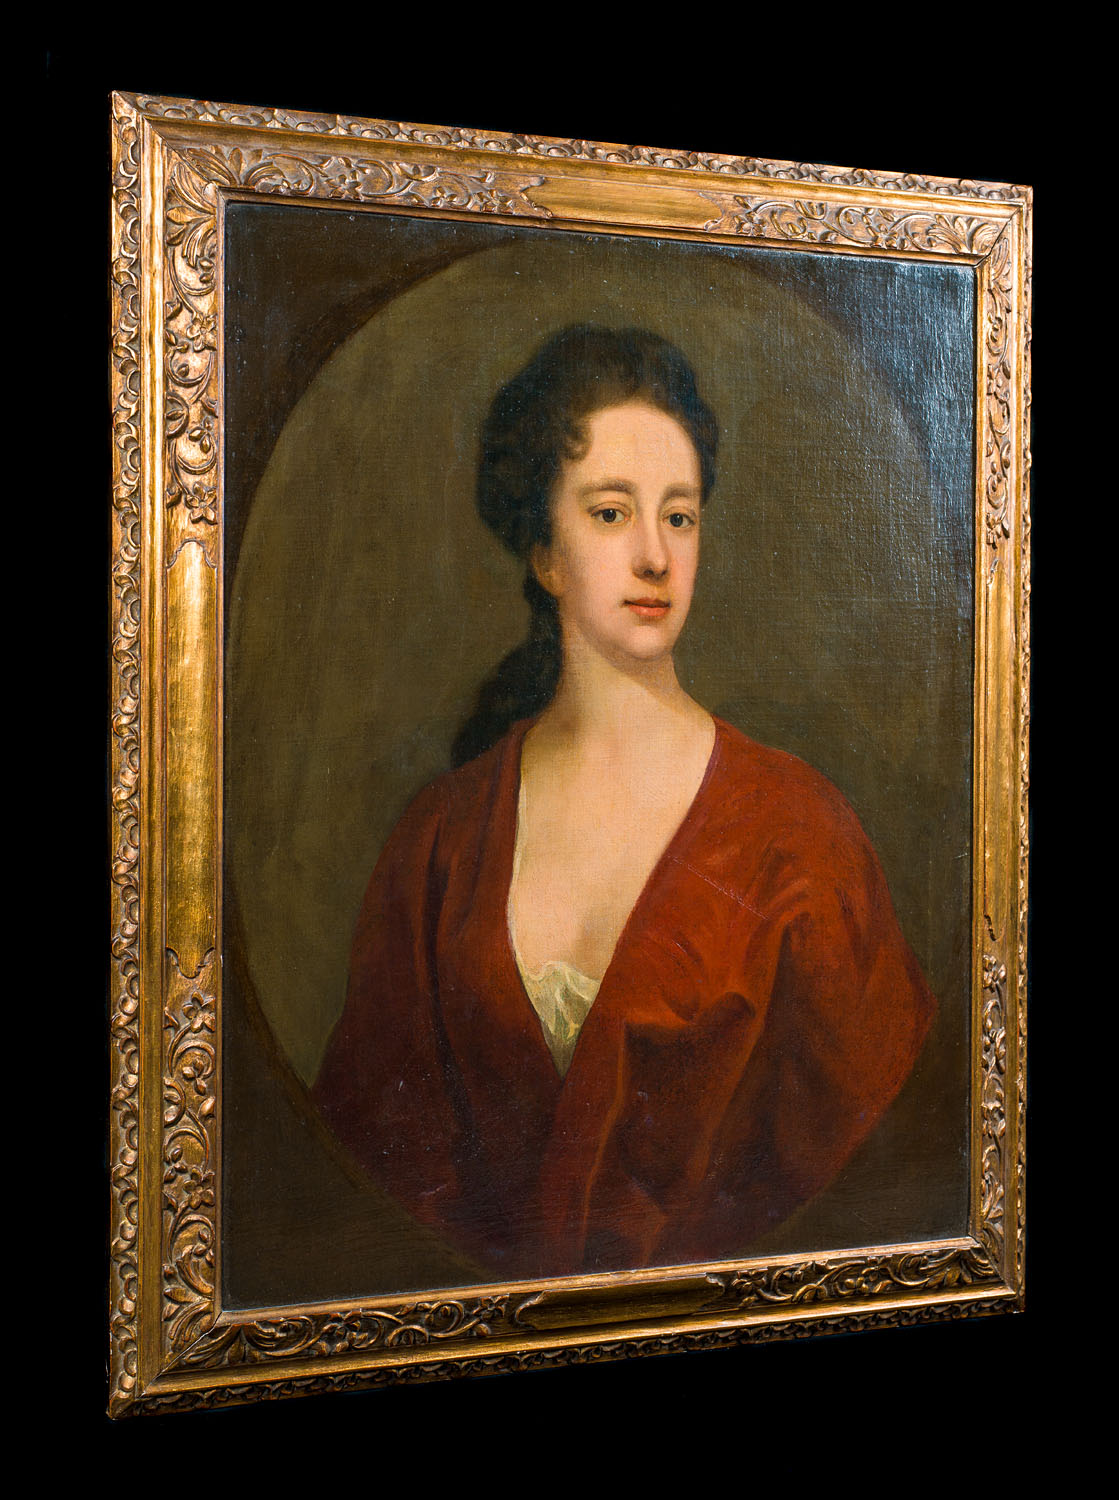 Portrait of a Lady 18th century oil on canvas